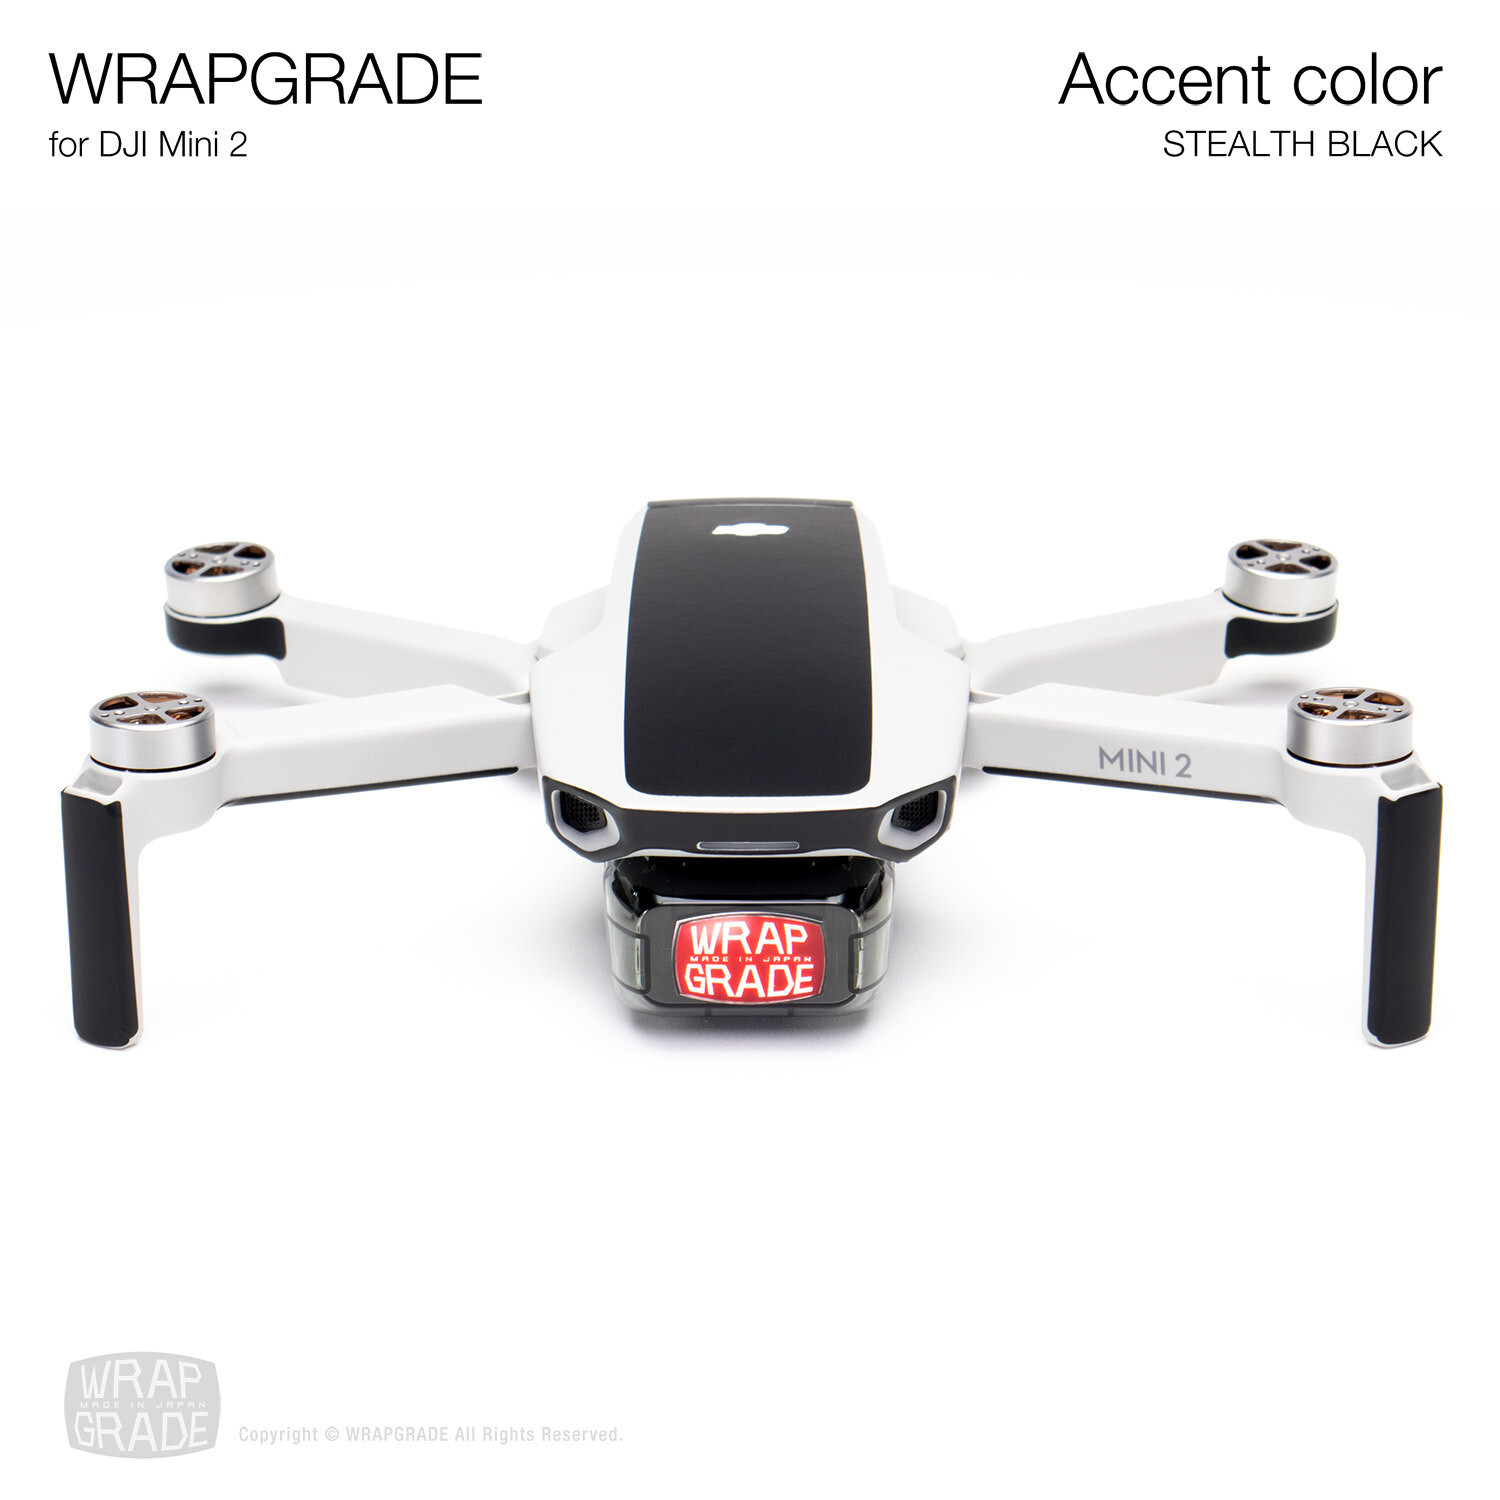 Wrapgrade Poly Skin for DJI Mini 2 | Accent color (STEALTH BLACK)